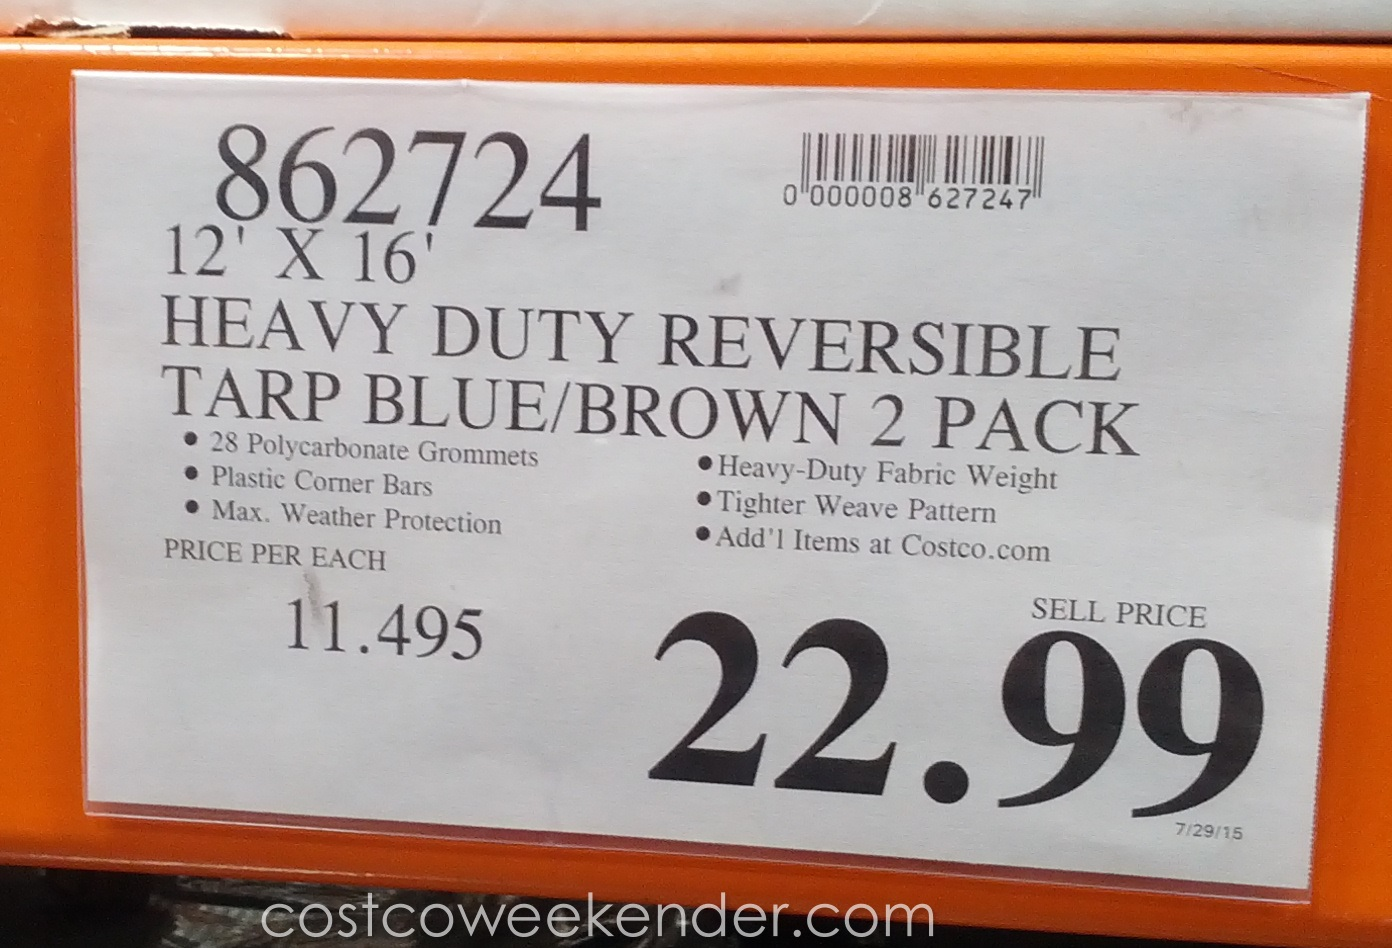 heavy duty reversible tarp blue brown 2 pack costco weekender deal for a 2 pack of heavy duty reversible tarp blue brown at